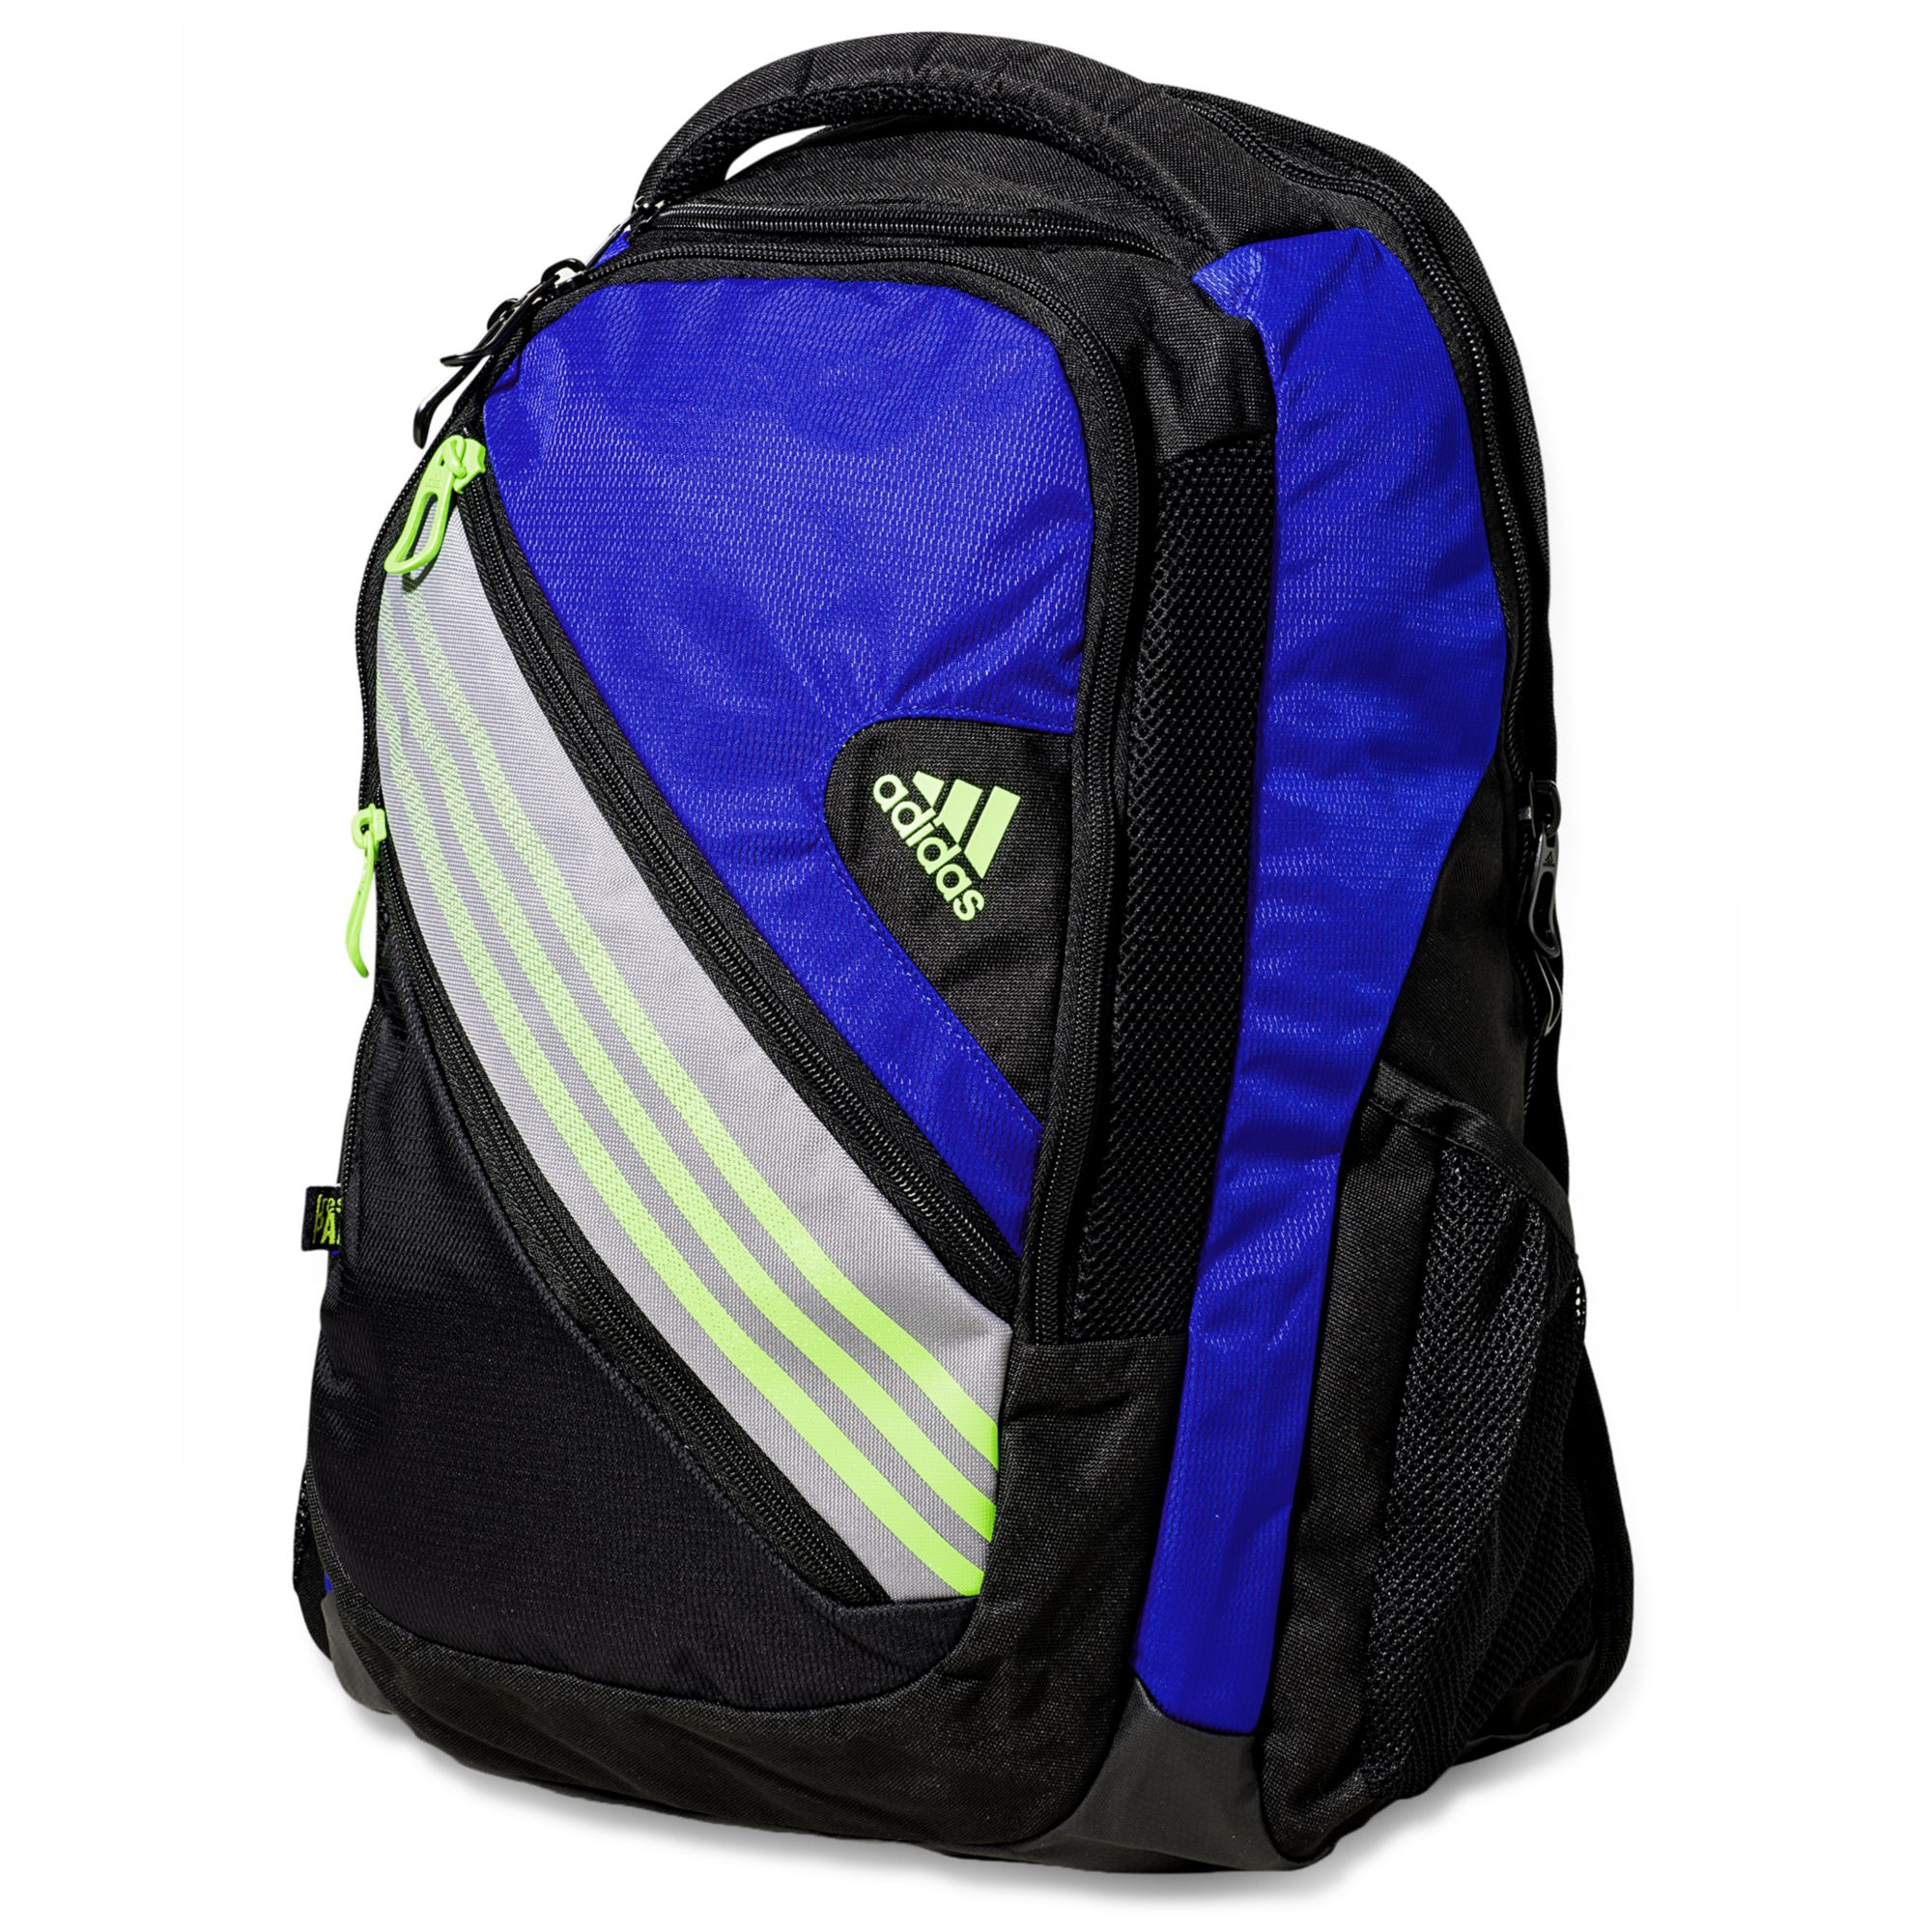 059186c29cbc Lyst - adidas Climacool Speed Iii Backpack in Blue for Men